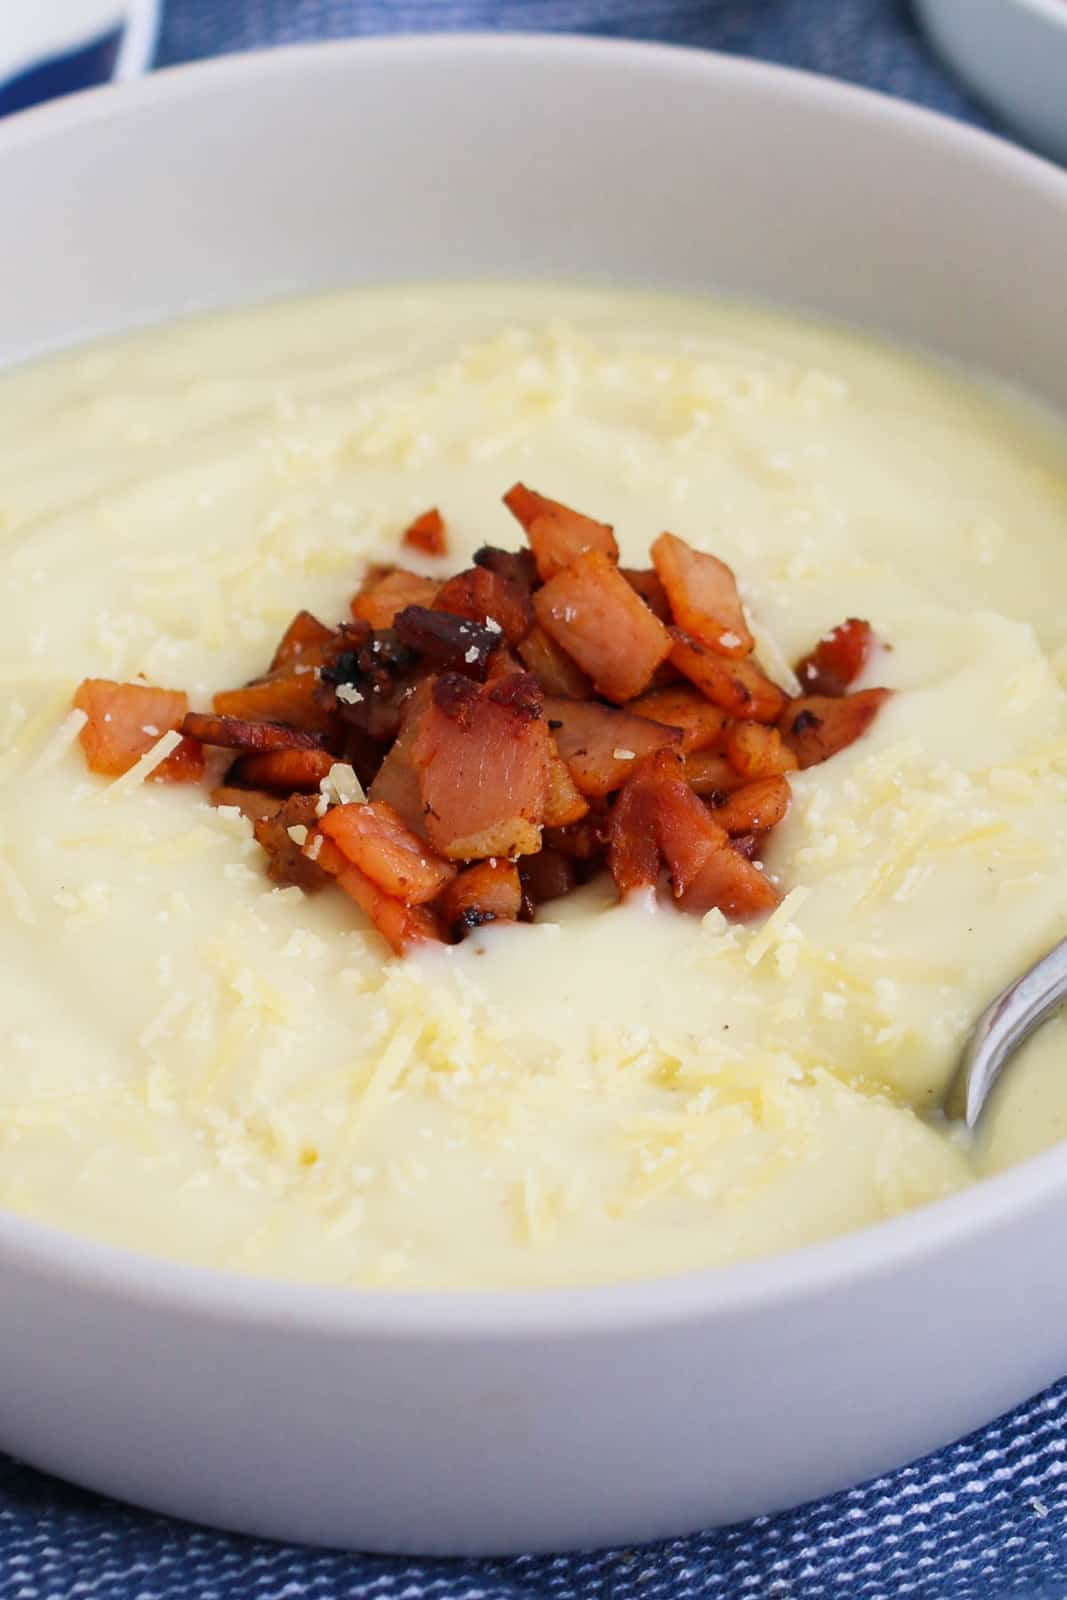 Bacon pieces on top of a bowl filled with creamy white soup.